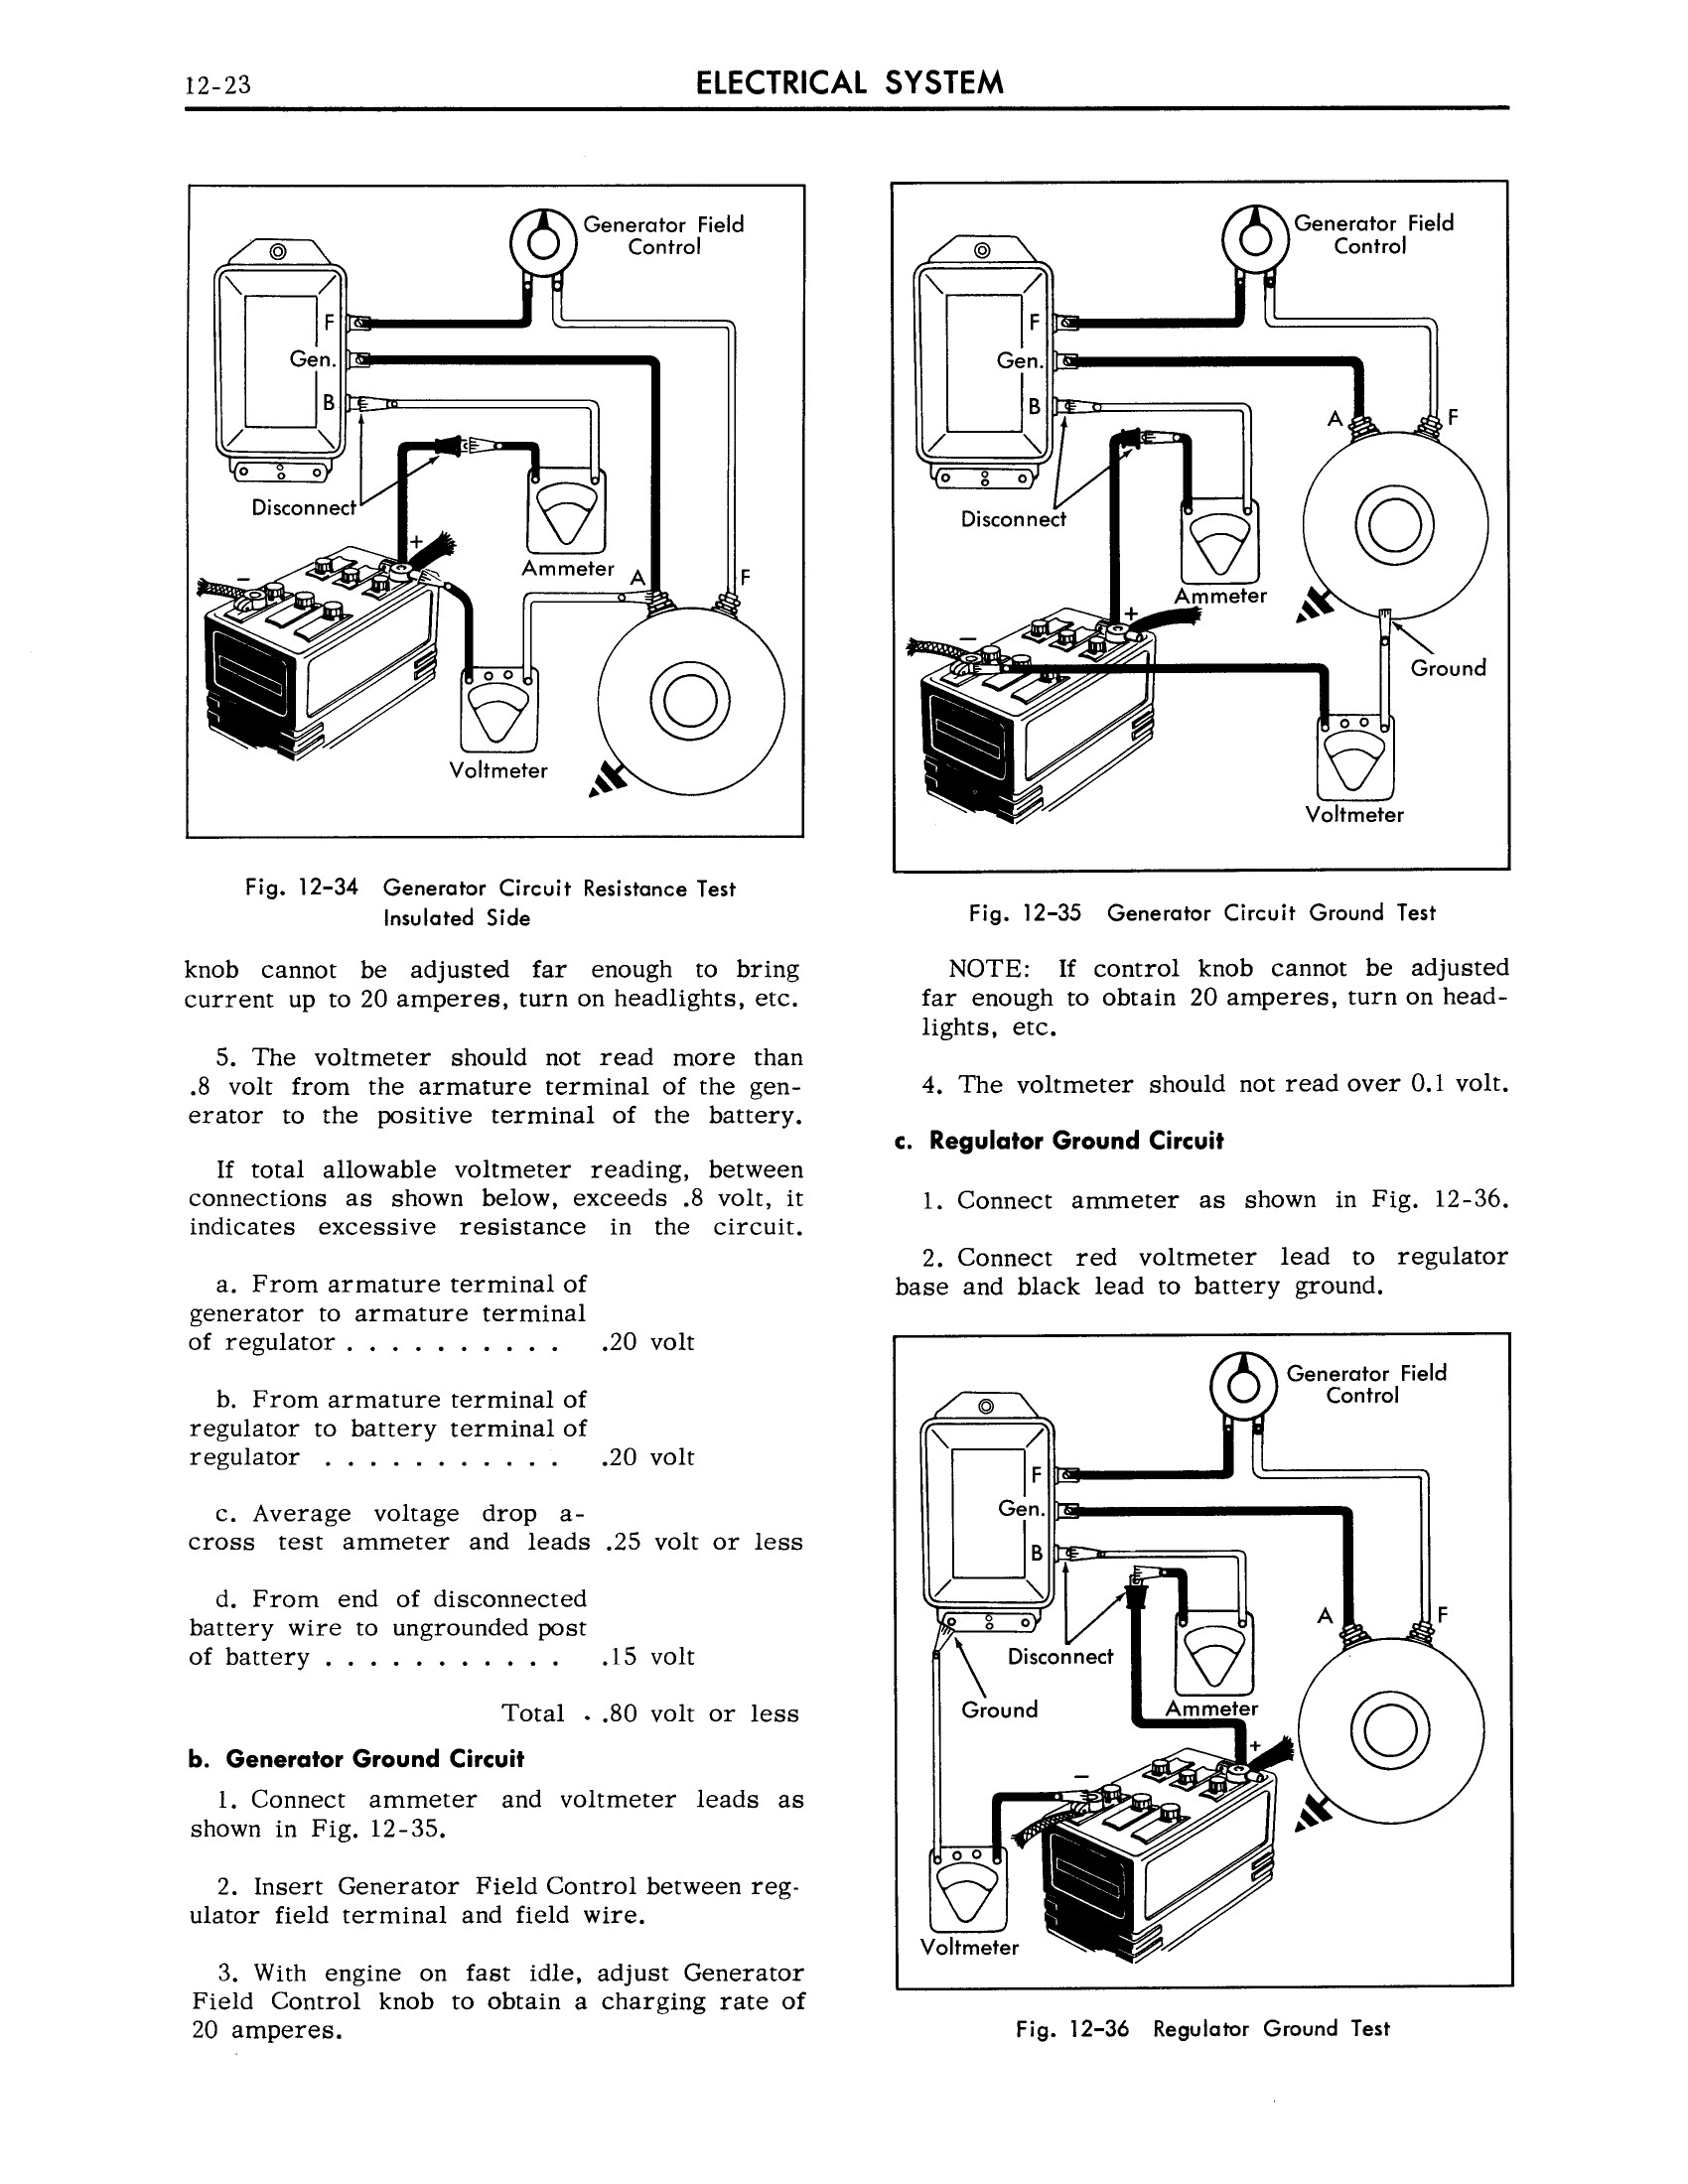 1959 Cadillac Shop Manual- Electrical System Page 23 of 49